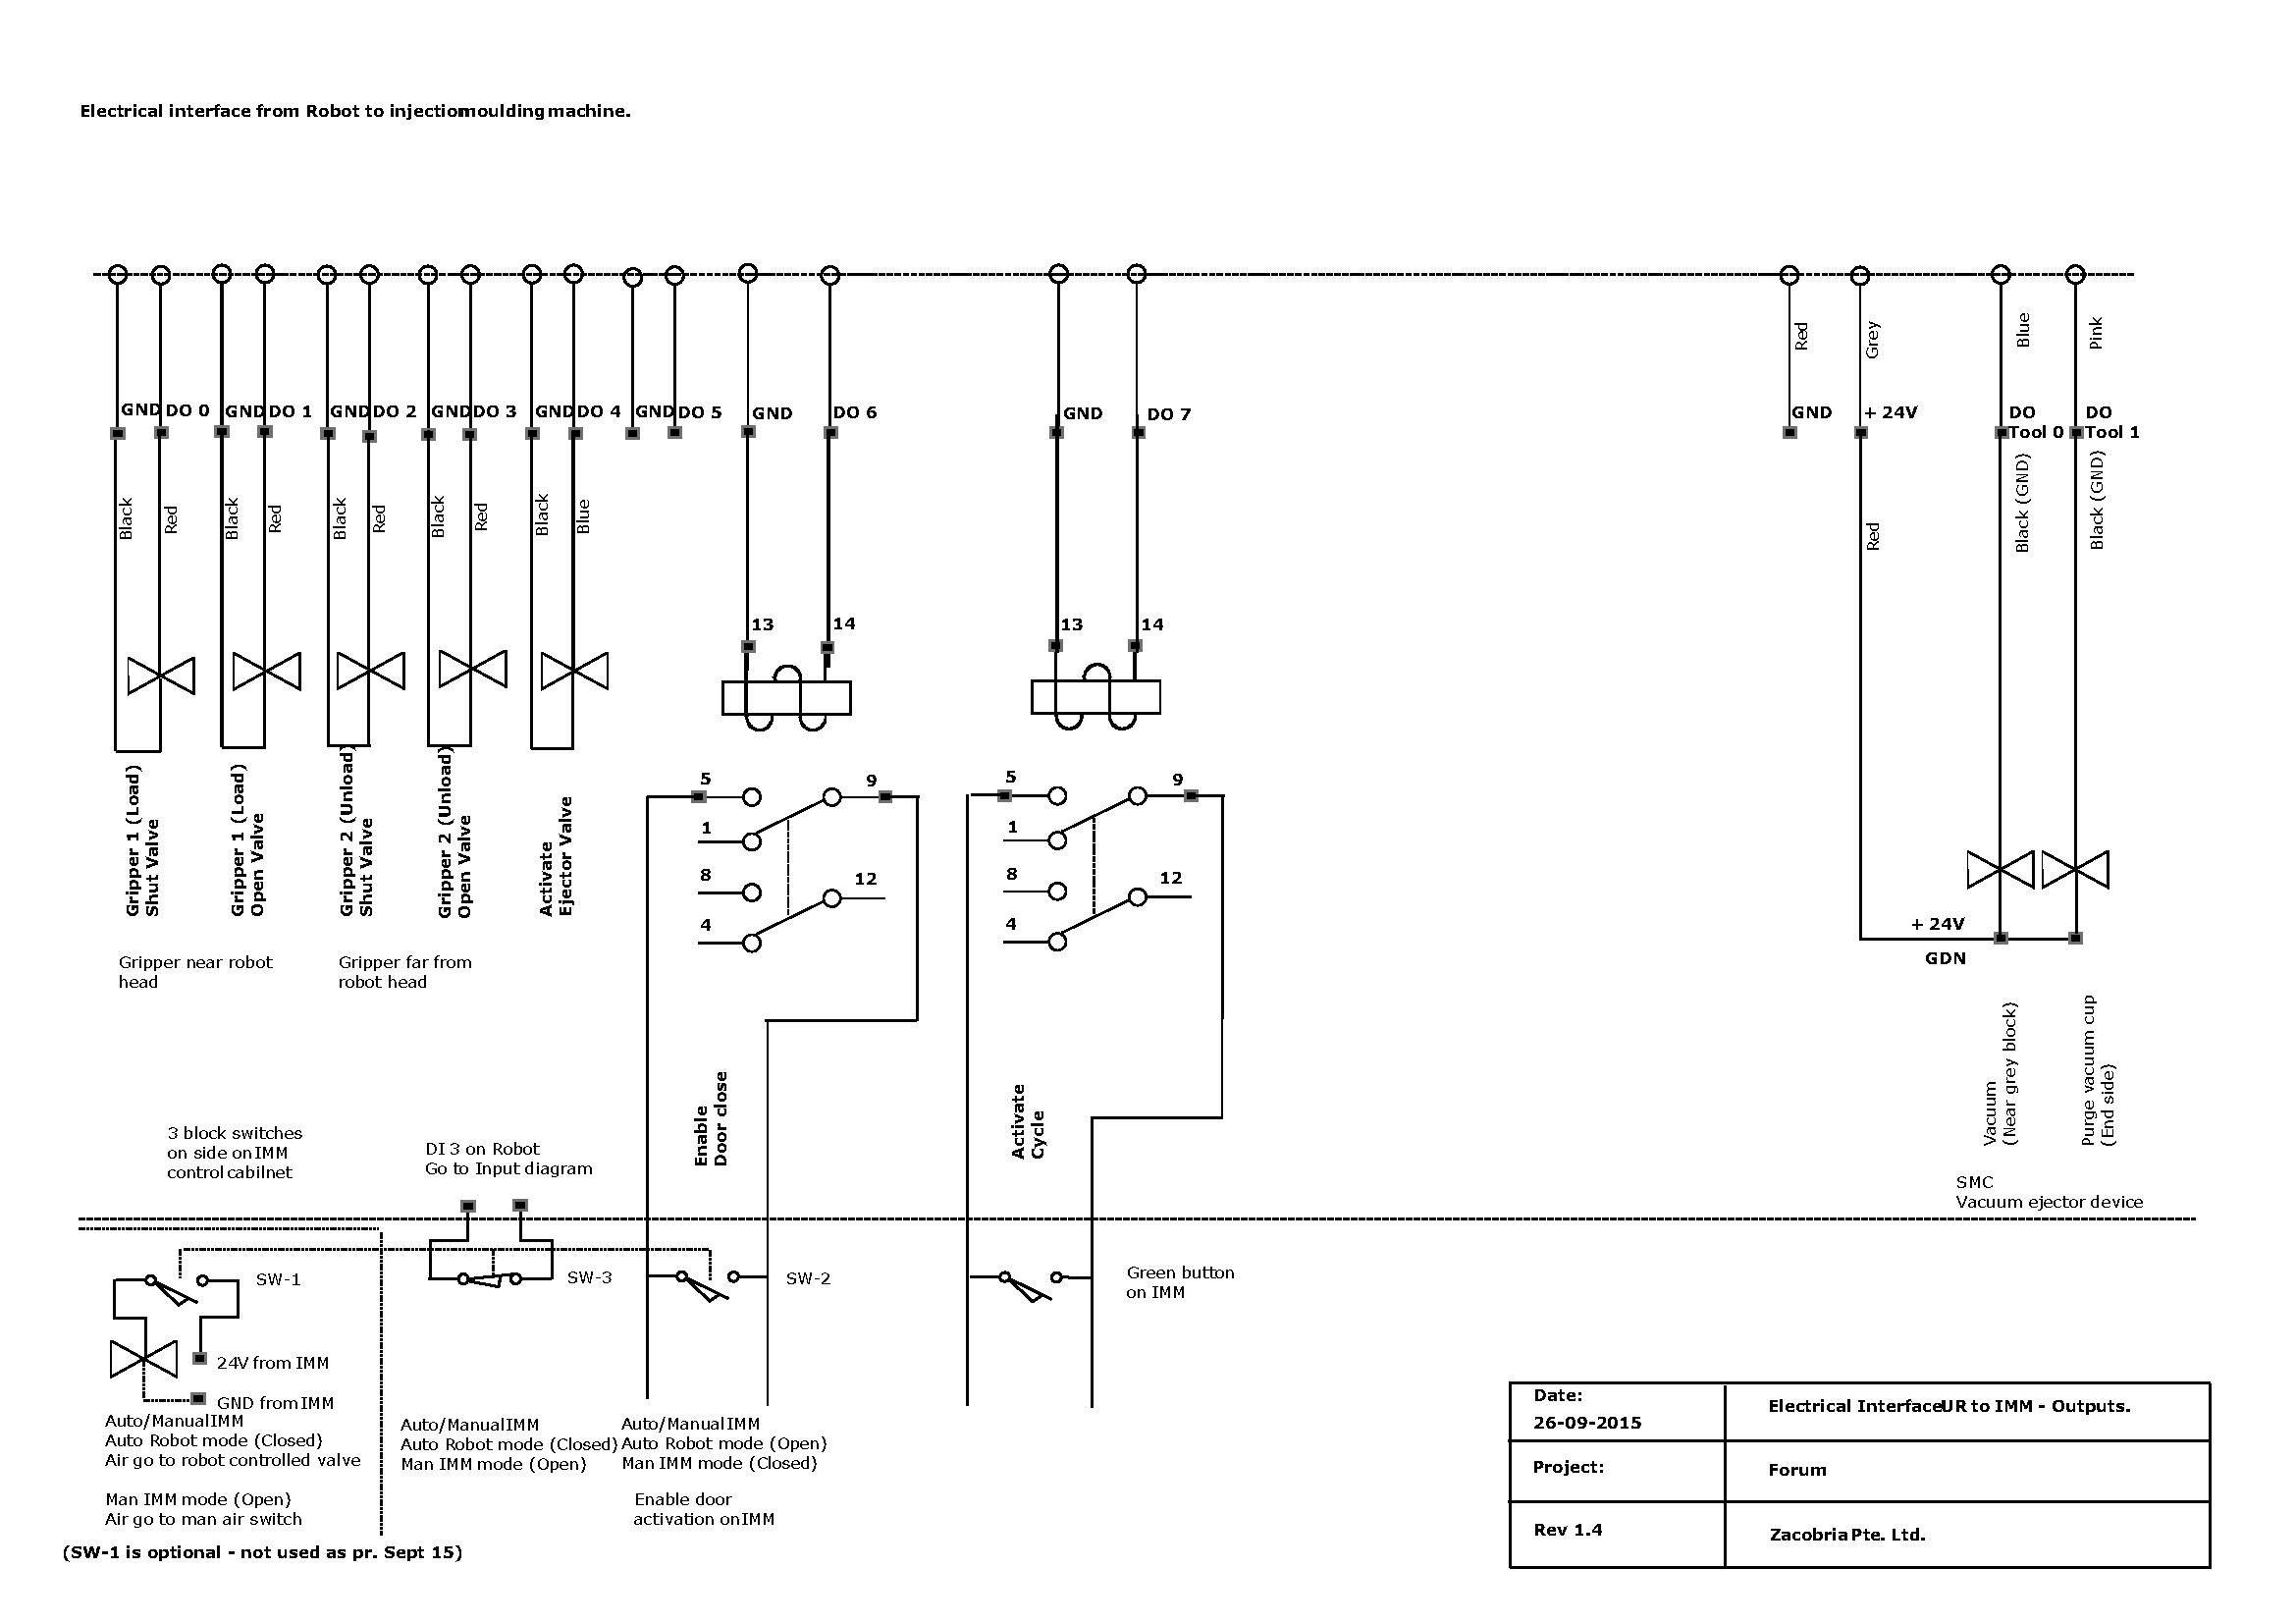 forum-imm-inteface-electrical-diagram-output